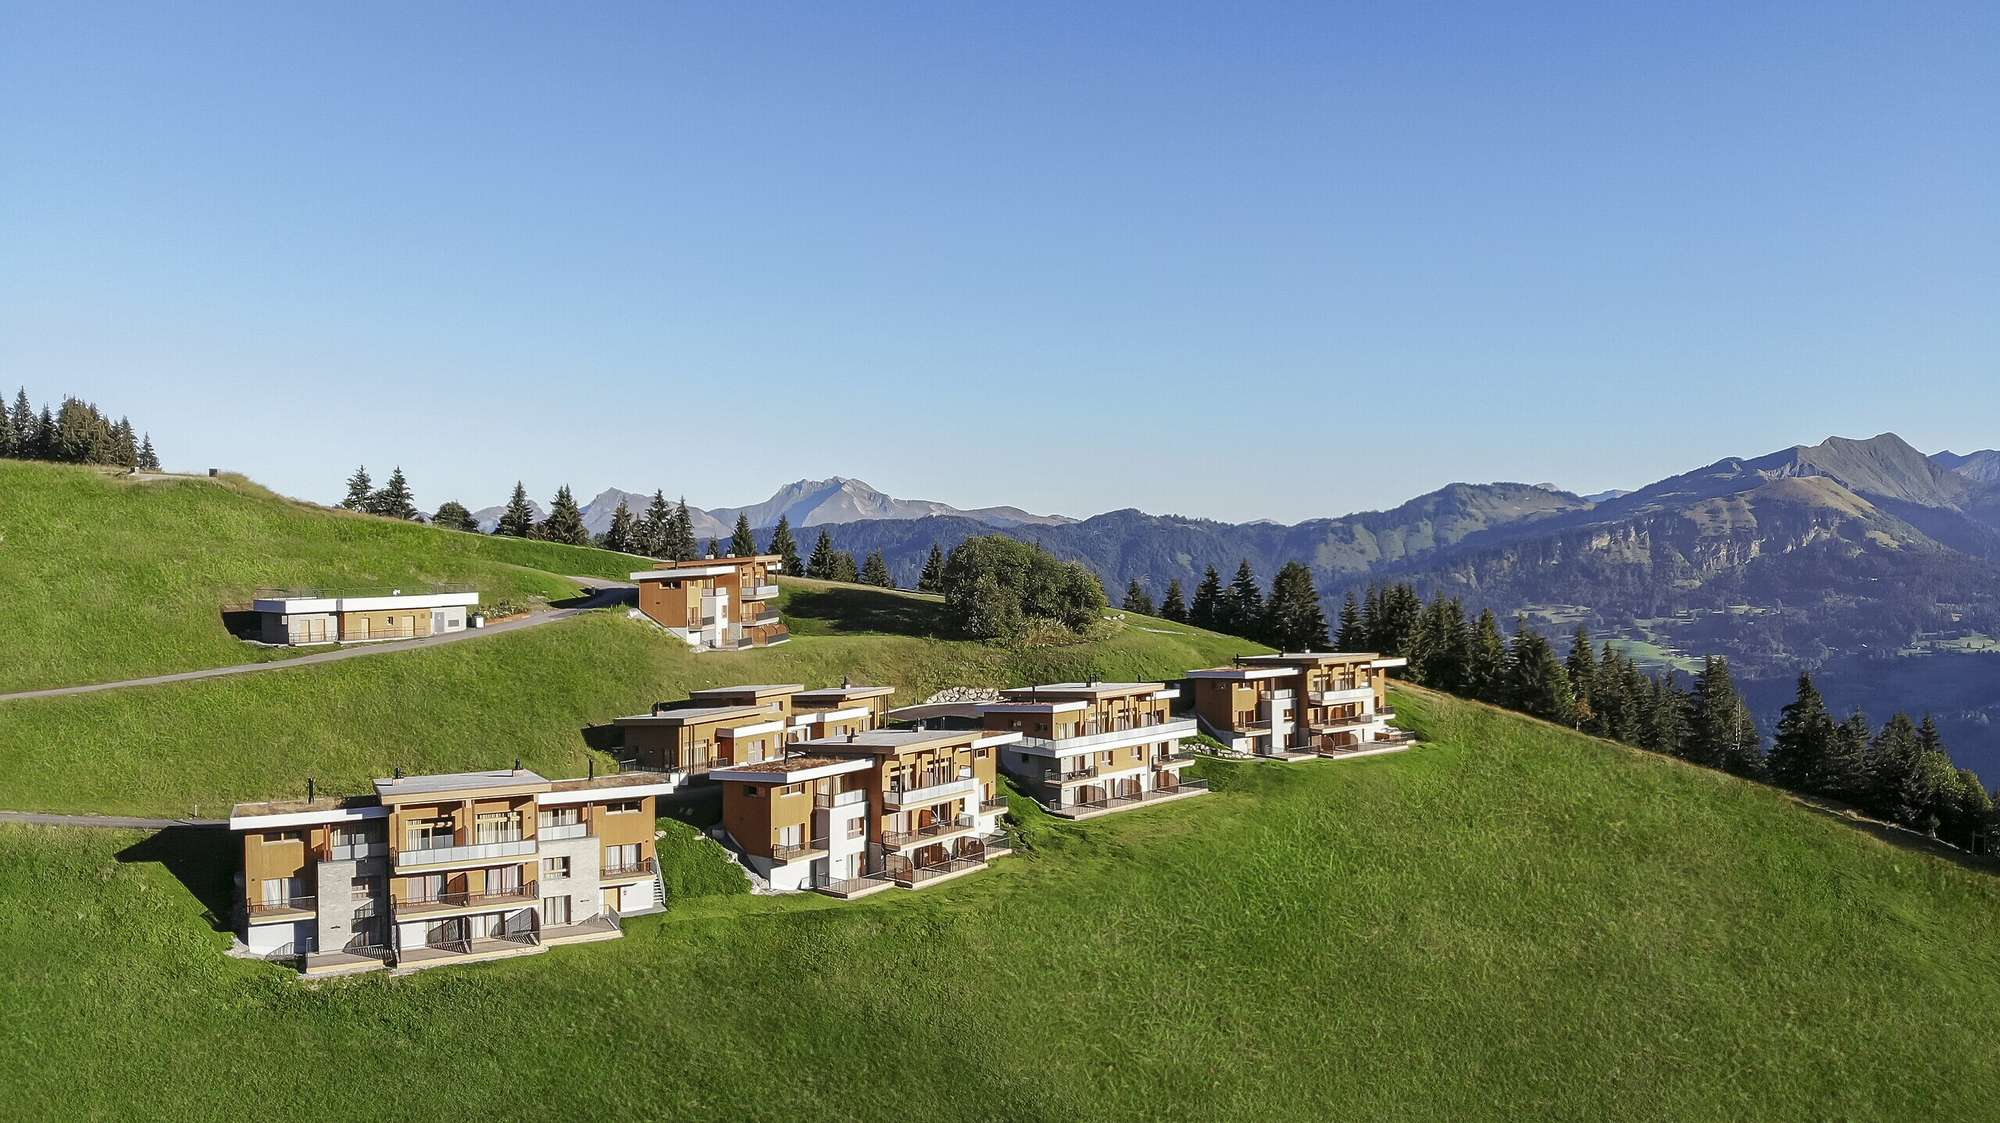 Open The Grand Massif Samoëns Morillon Chalet Apartments תמונות slideshow gallery at 1